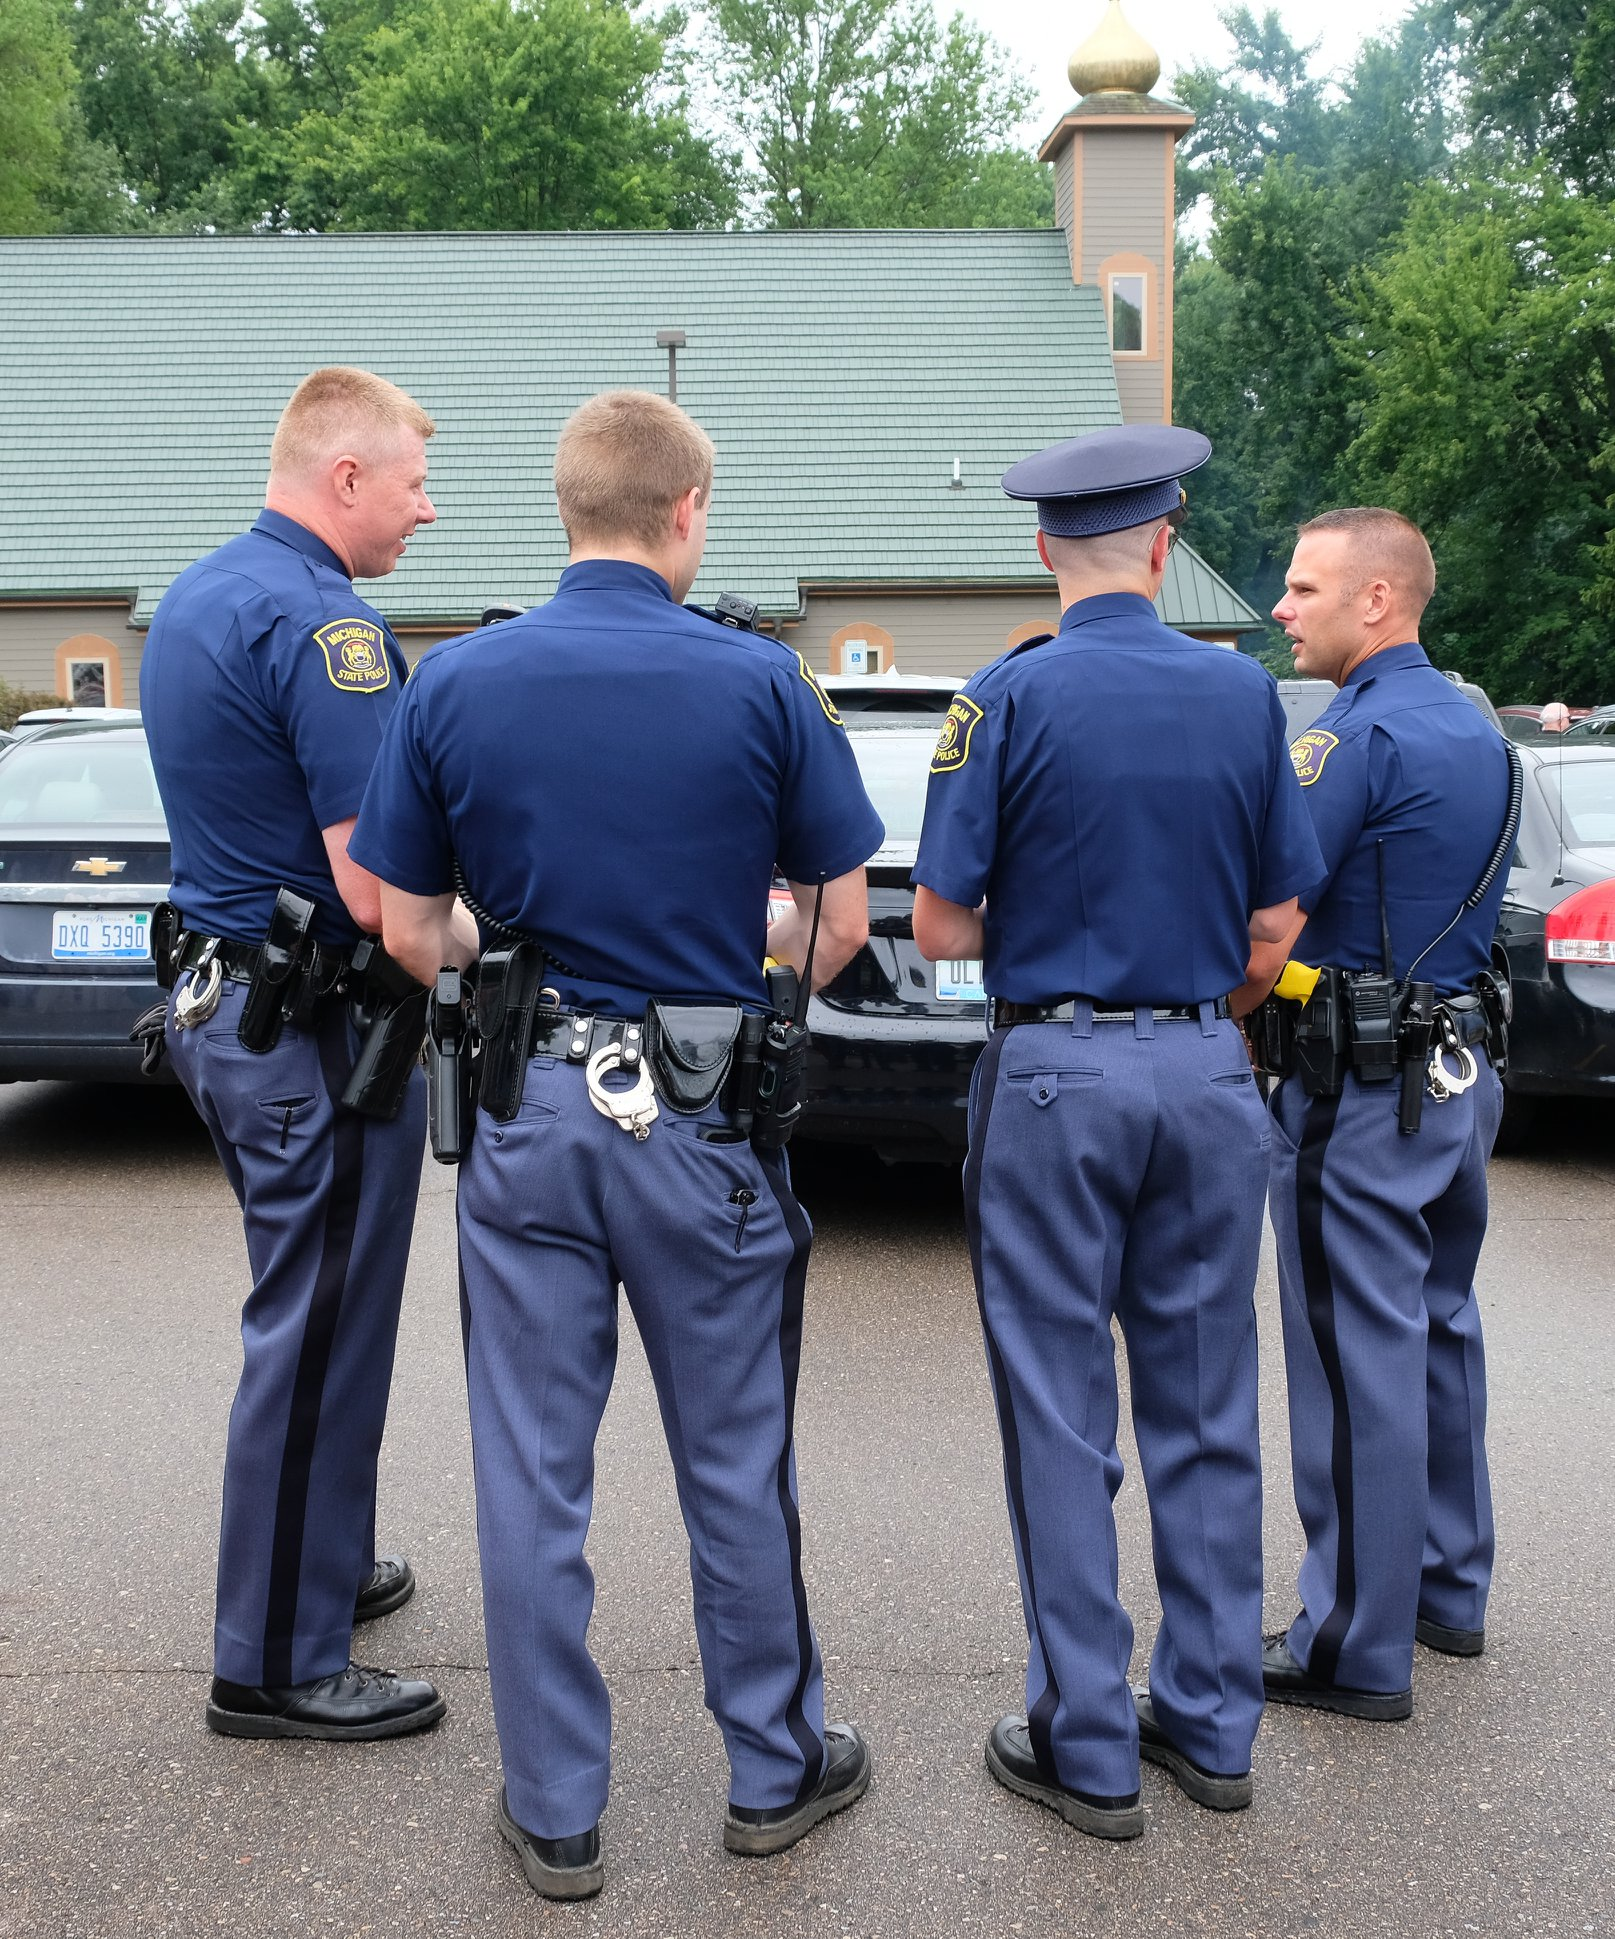 four state troopers standing together in church parking lot